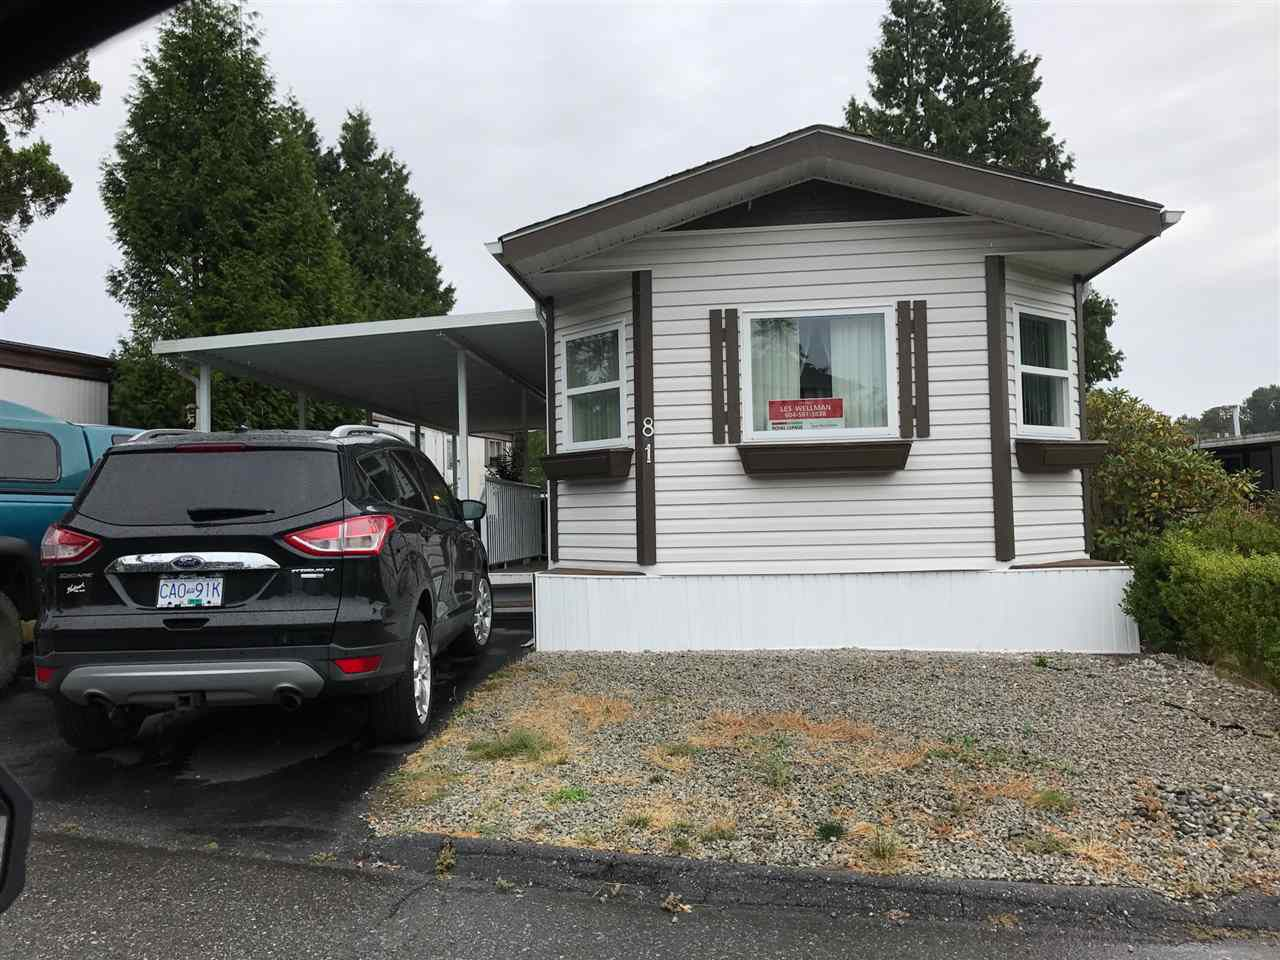 """Main Photo: 81 1840 160 Street in Surrey: King George Corridor Manufactured Home for sale in """"BREAKAWAY BAYS"""" (South Surrey White Rock)  : MLS®# R2203990"""